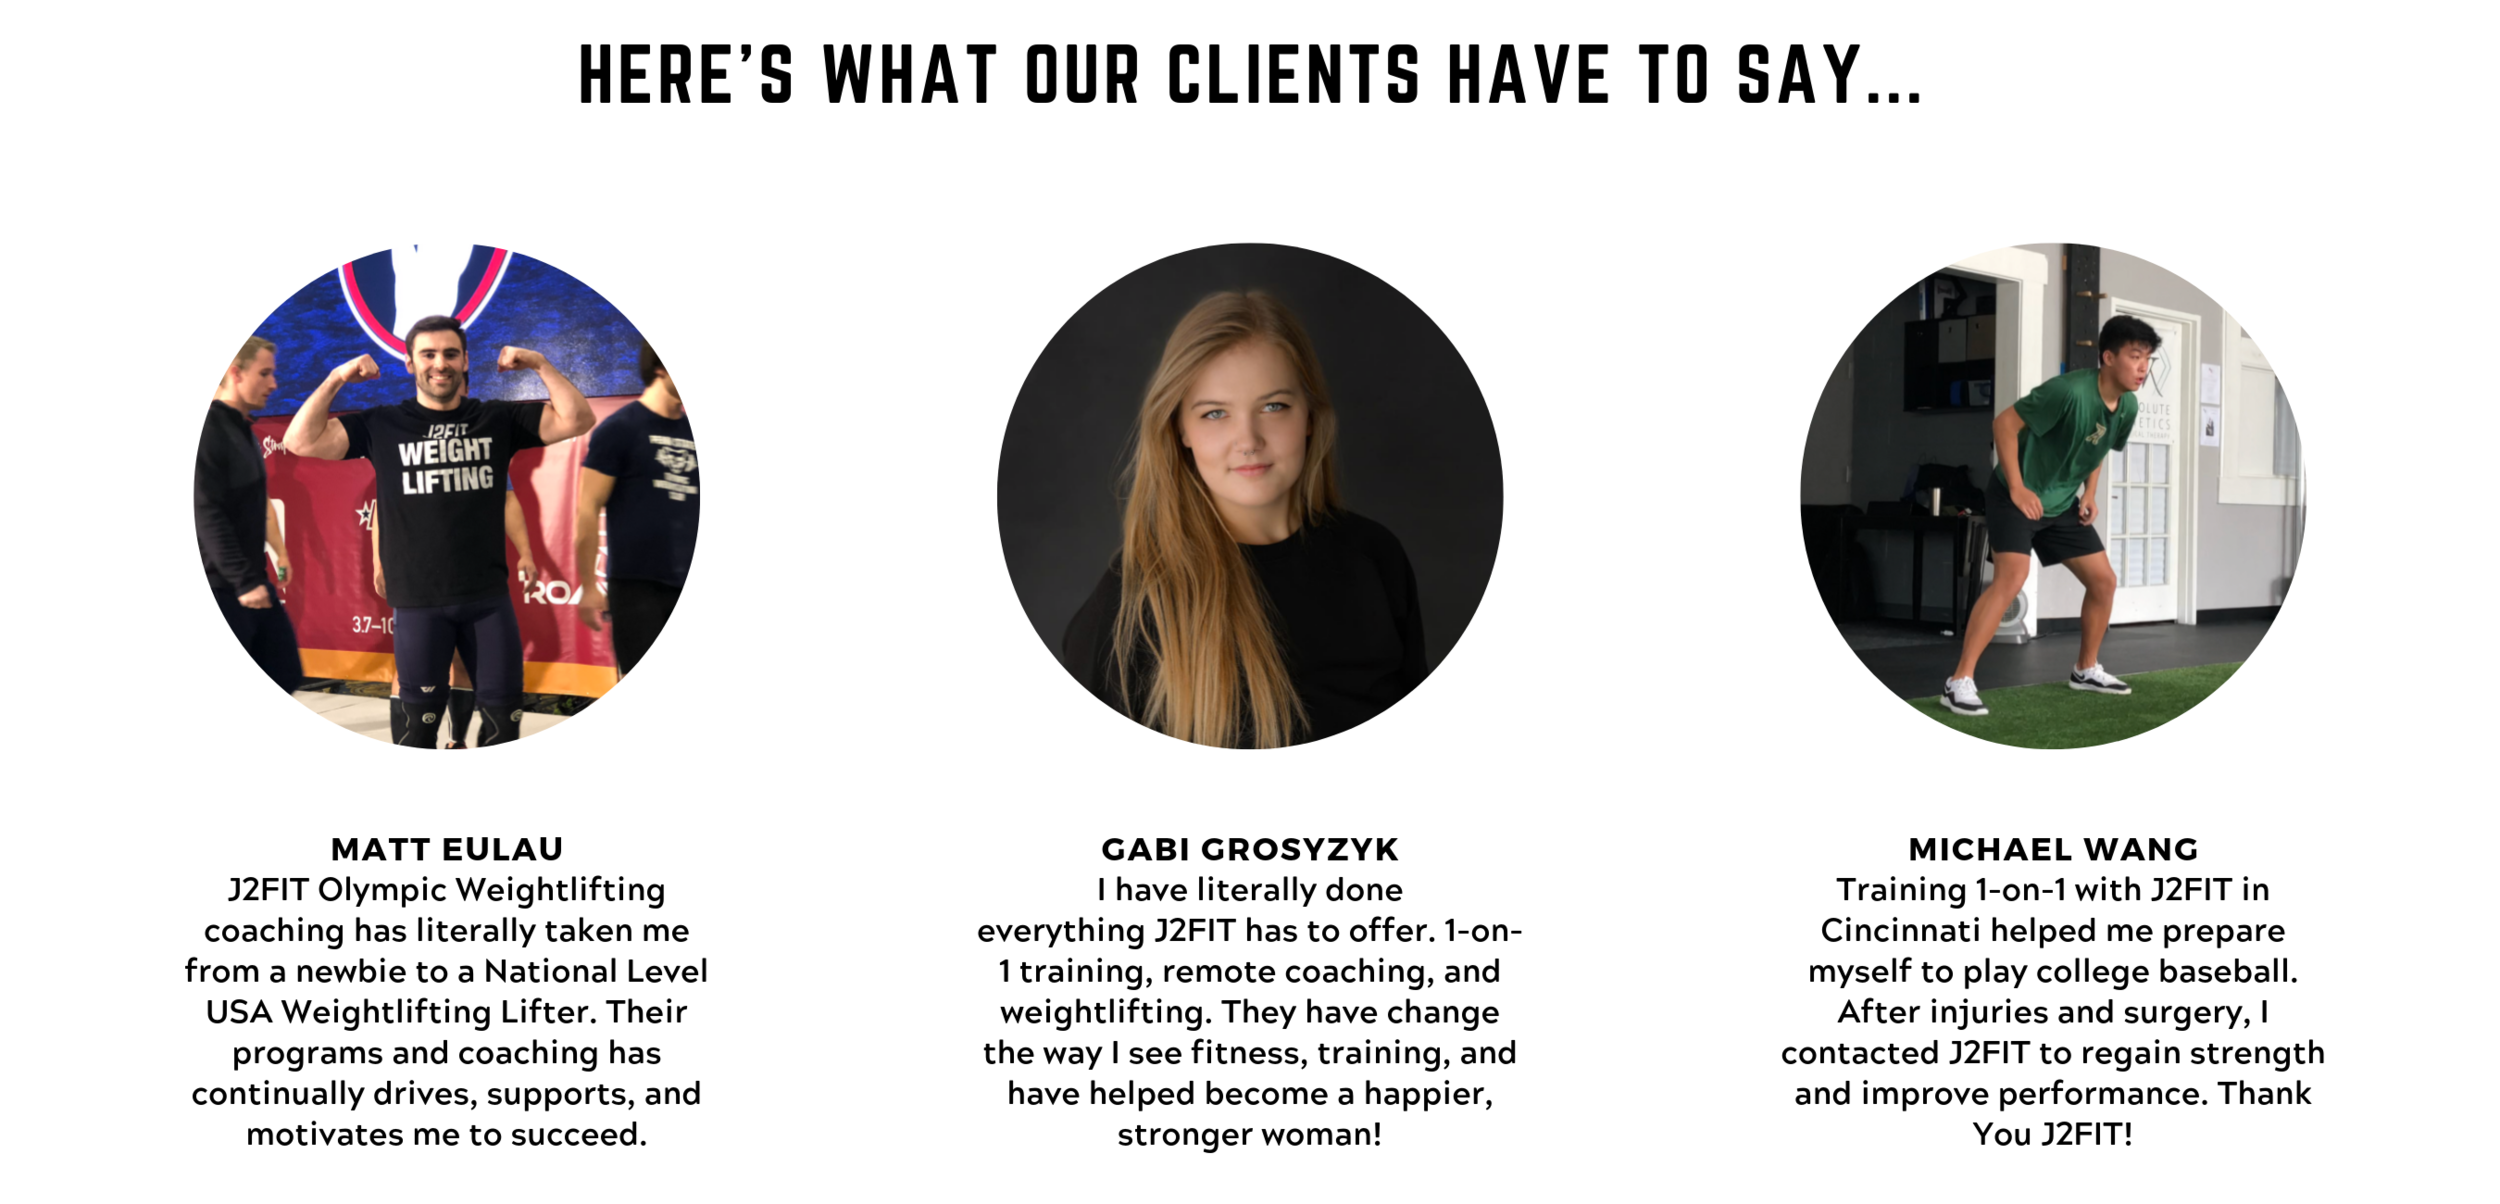 Here's What Our Clients have ot say... (1).png